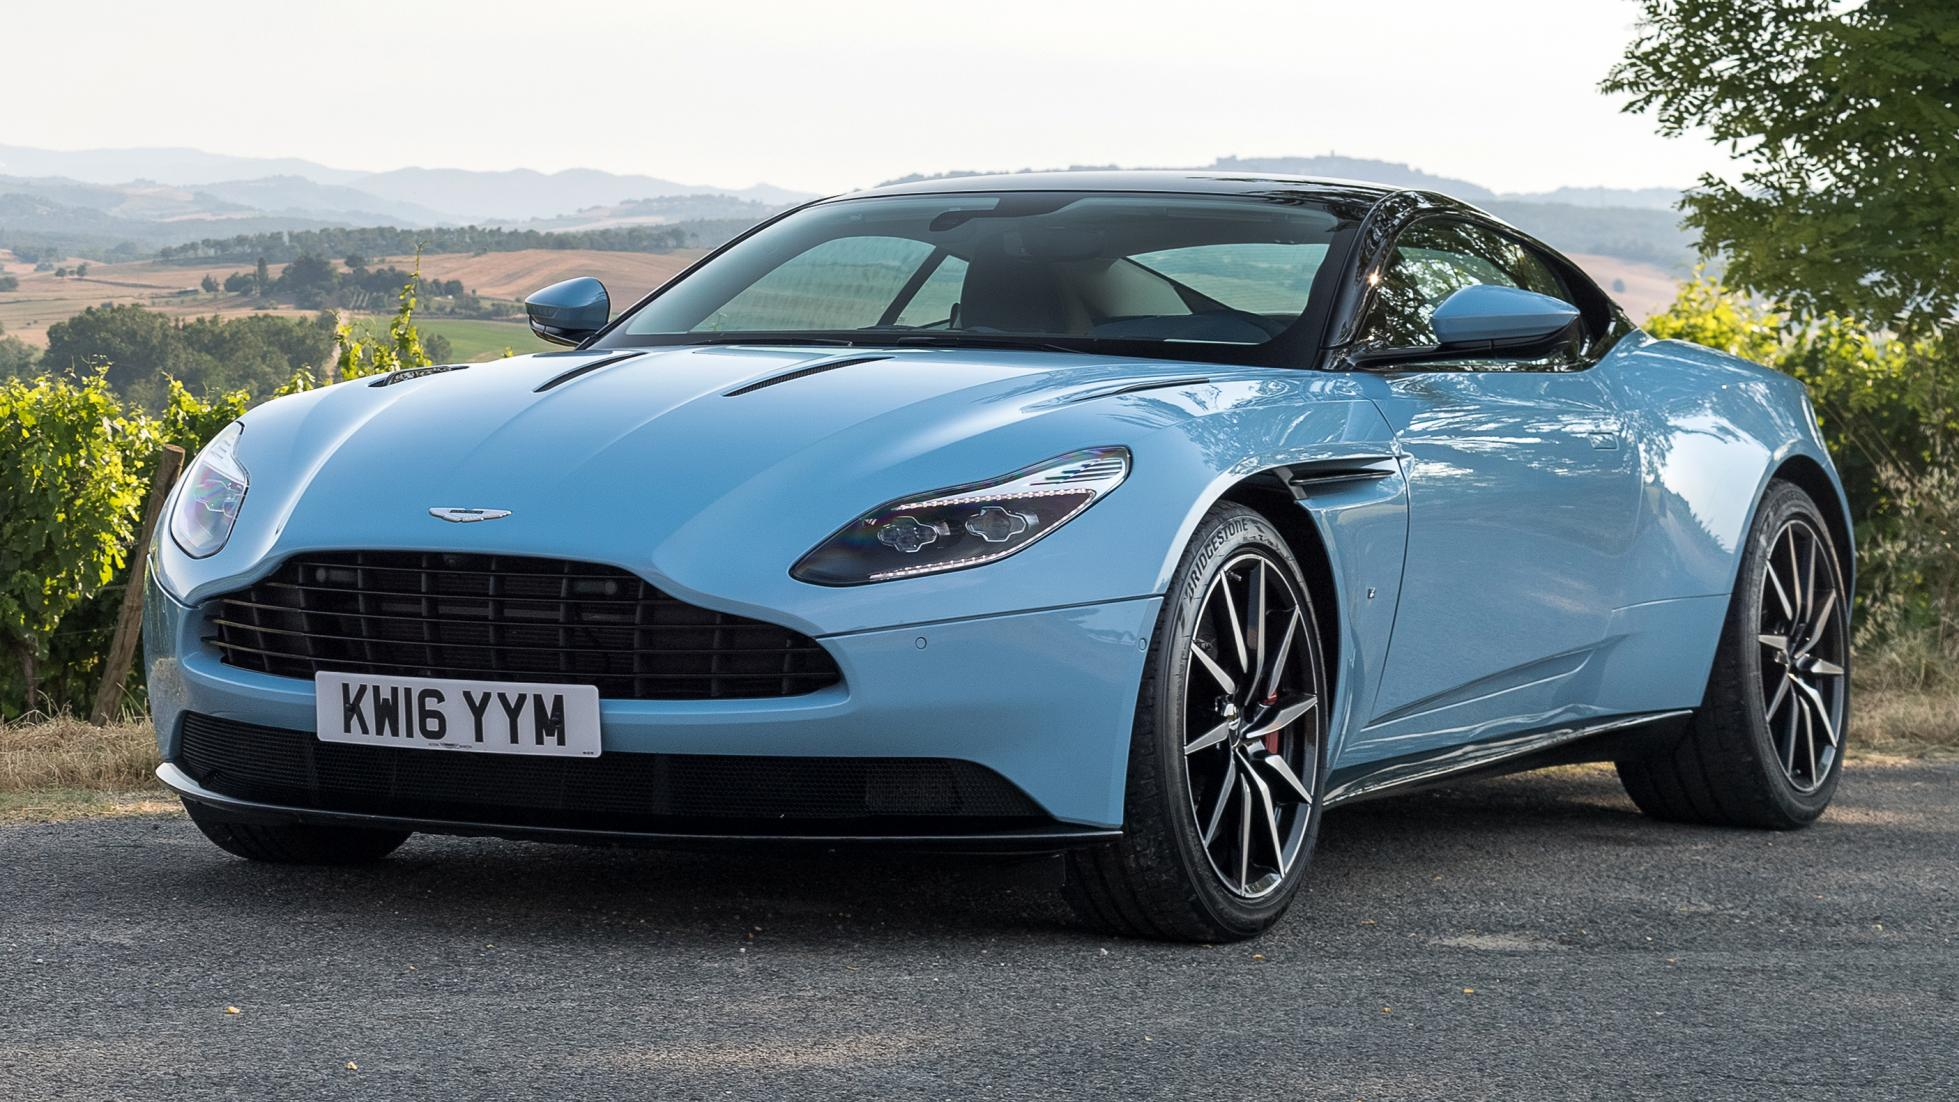 10 Aston Martin Pdf Manuals Free Download